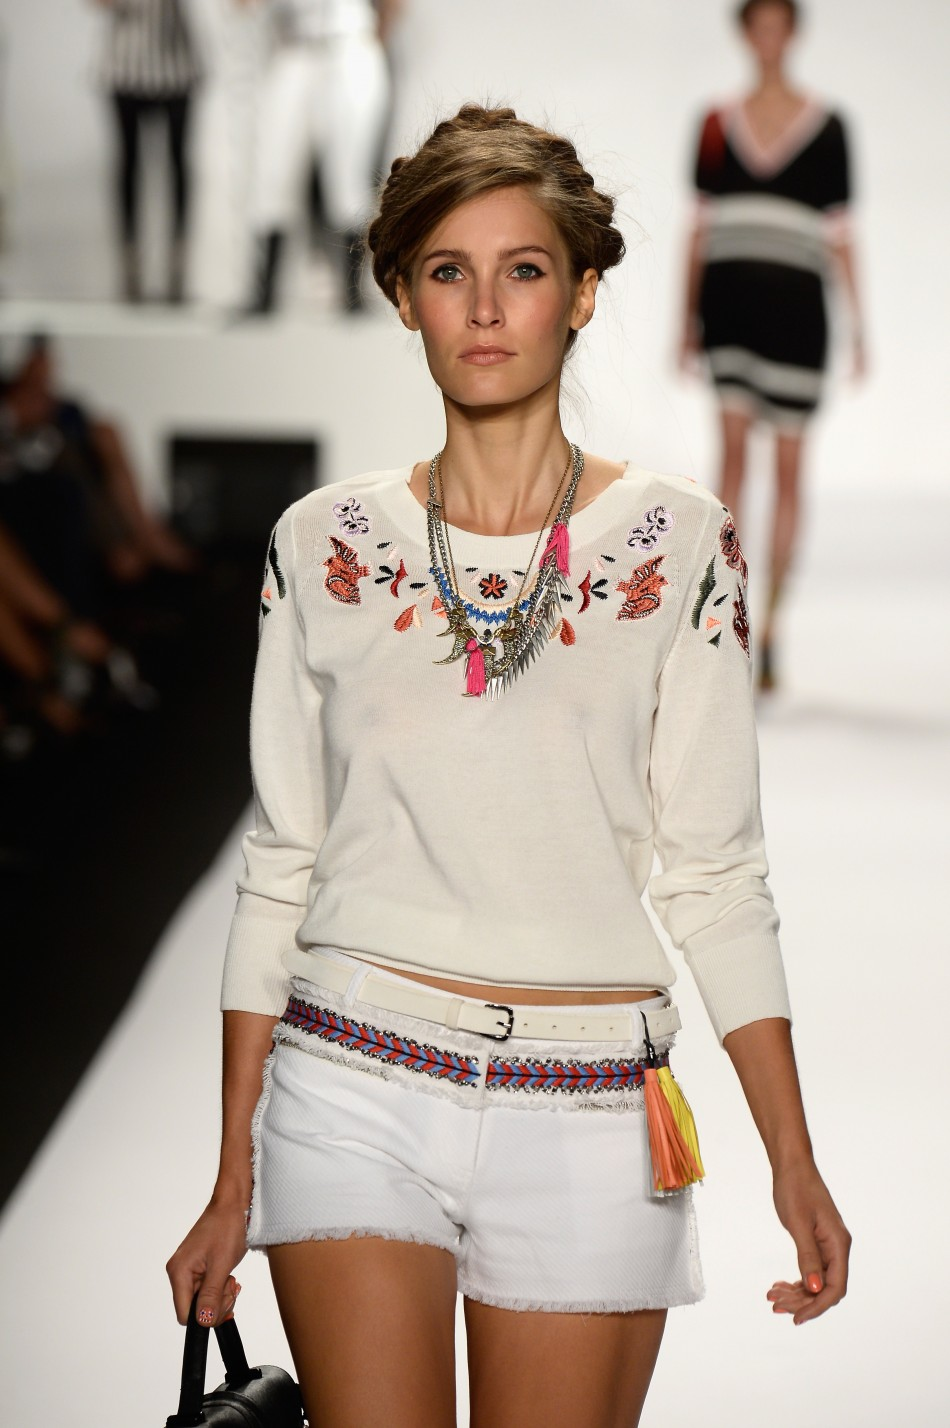 20579-rebecca-minkoff-spring-2014-new-york-fashion-week.jpg